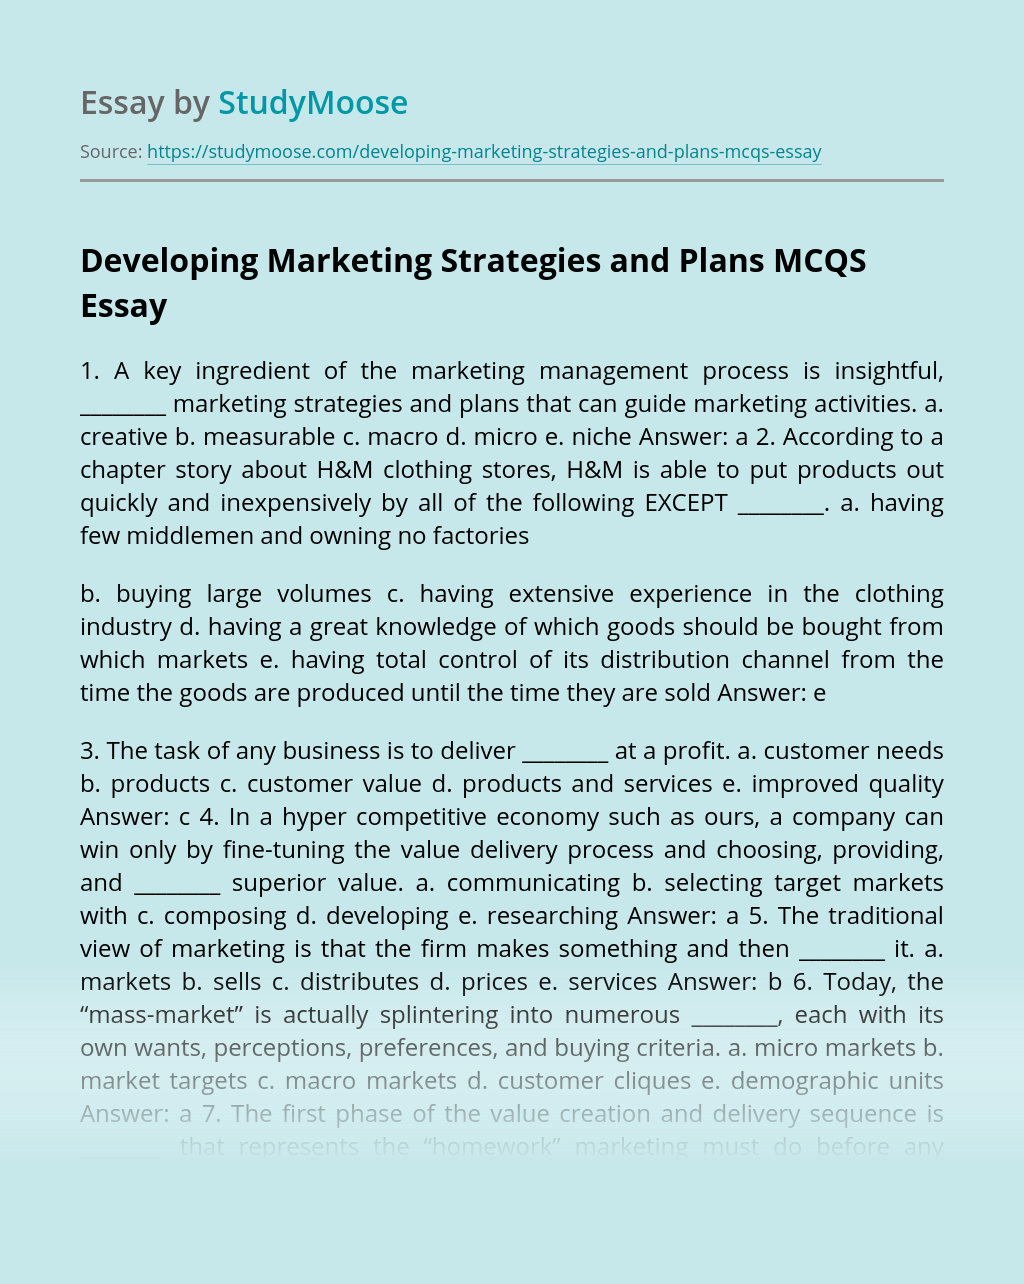 Developing Marketing Strategies and Plans MCQS